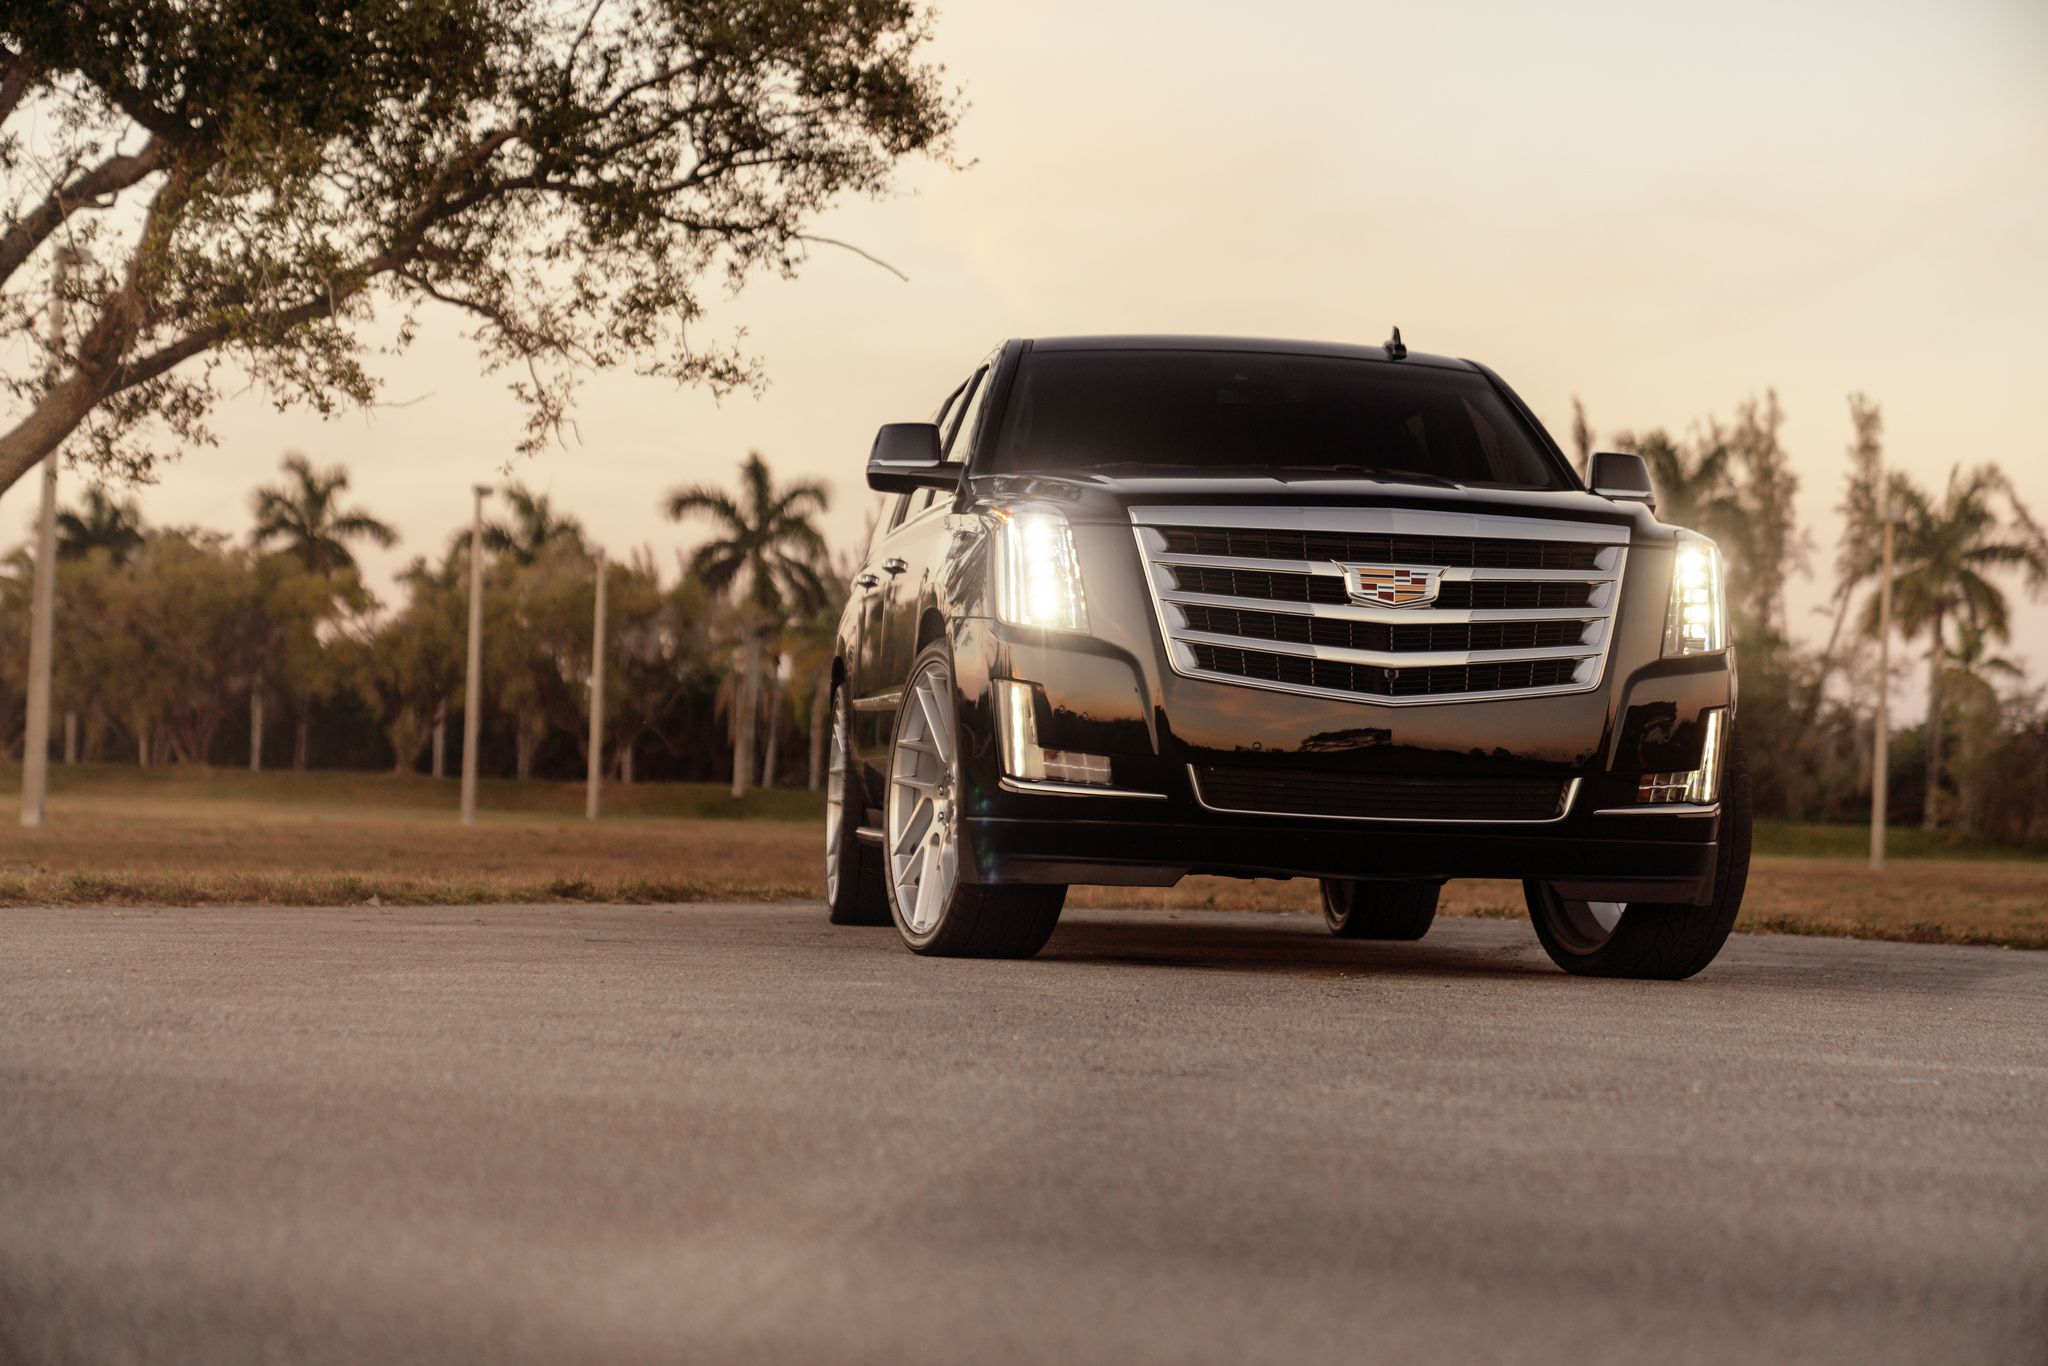 Cadillac Escalade - with turned-on headlights